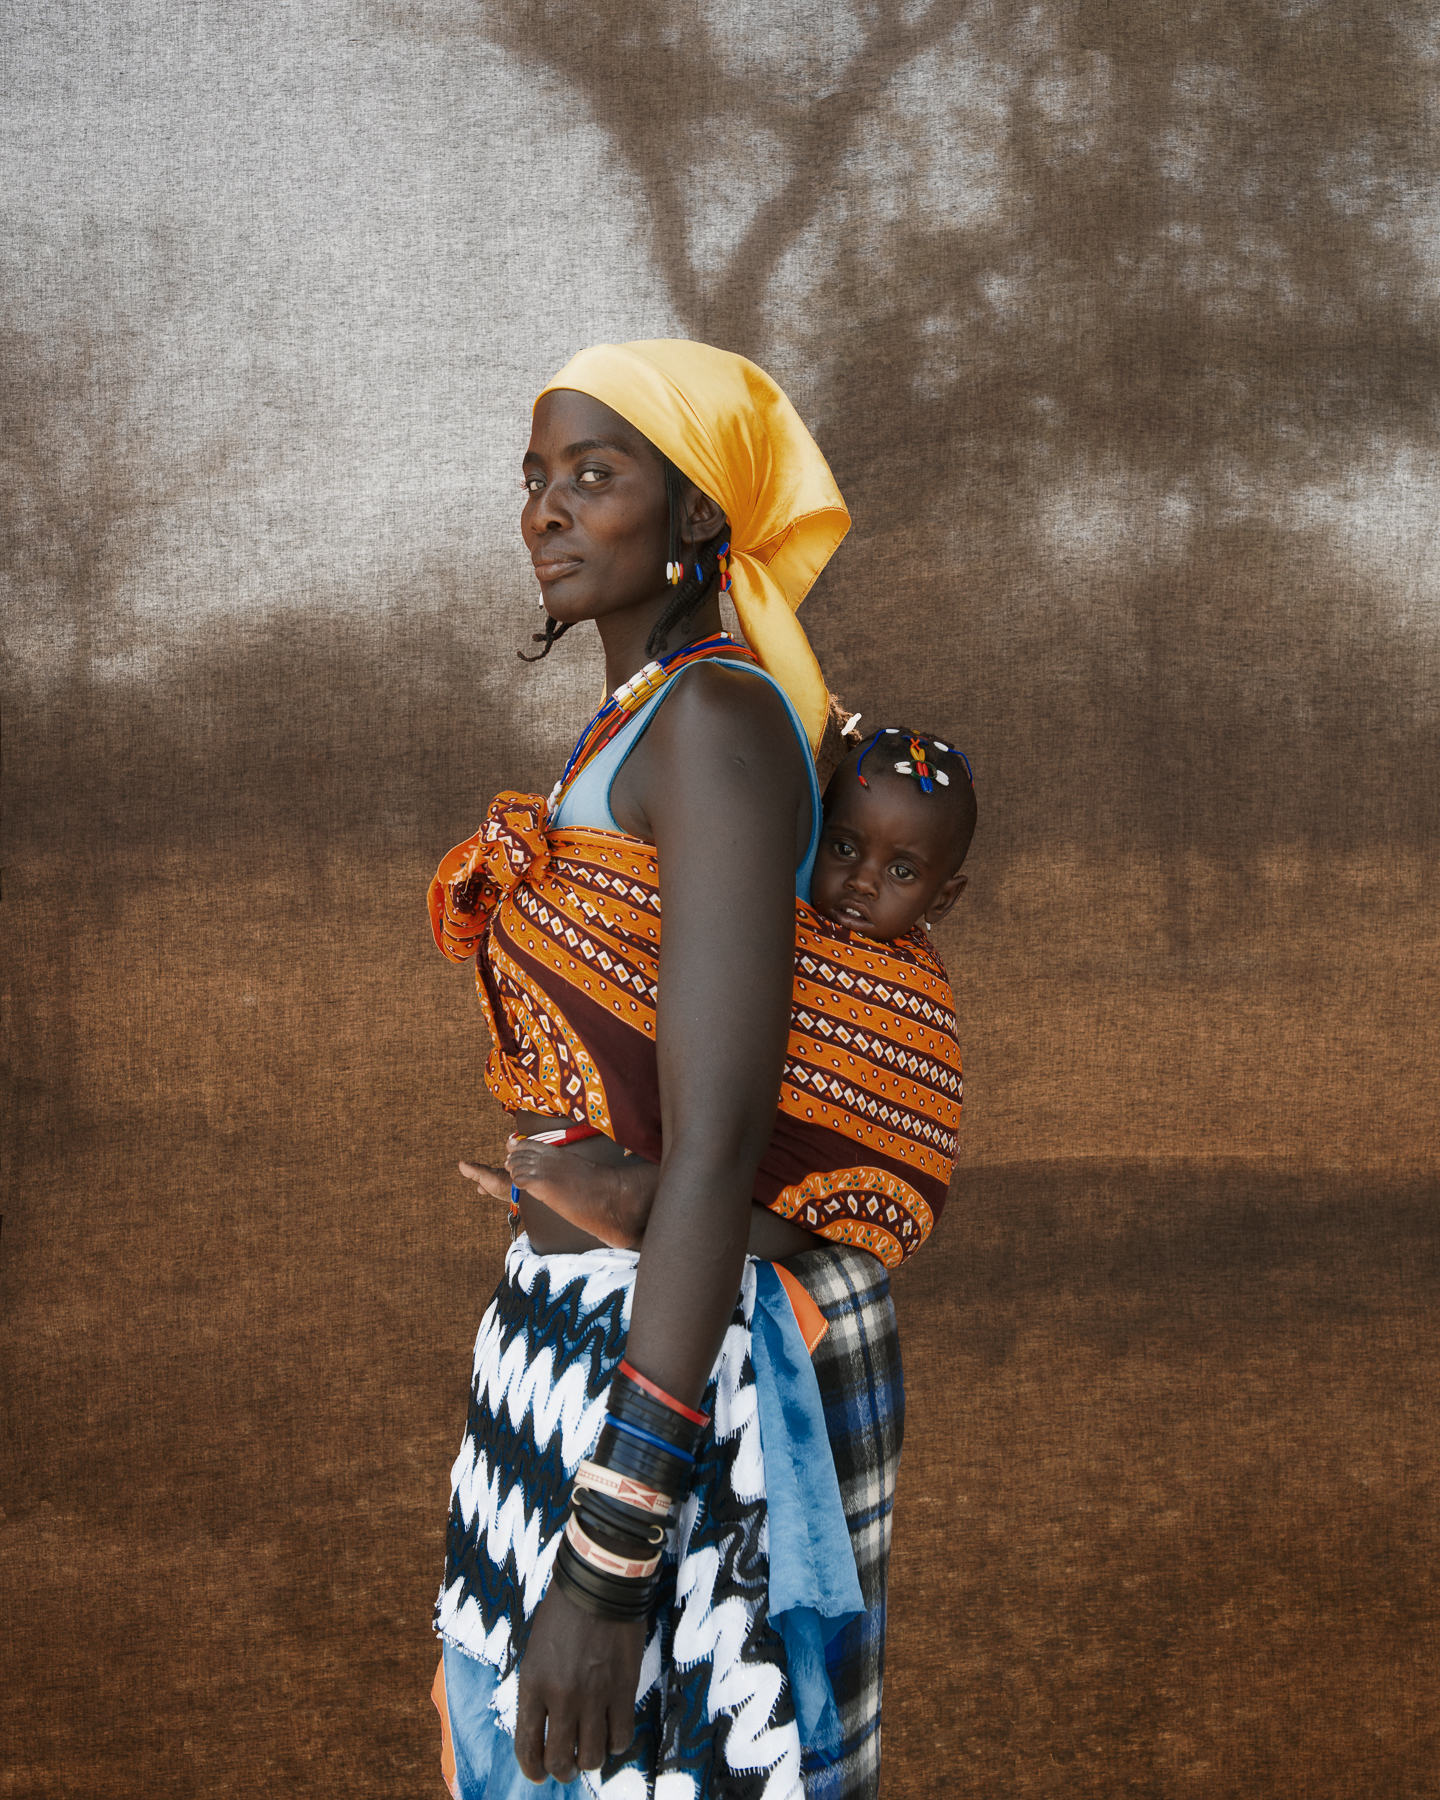 The Disappearing World Of Africa's Last Tribes